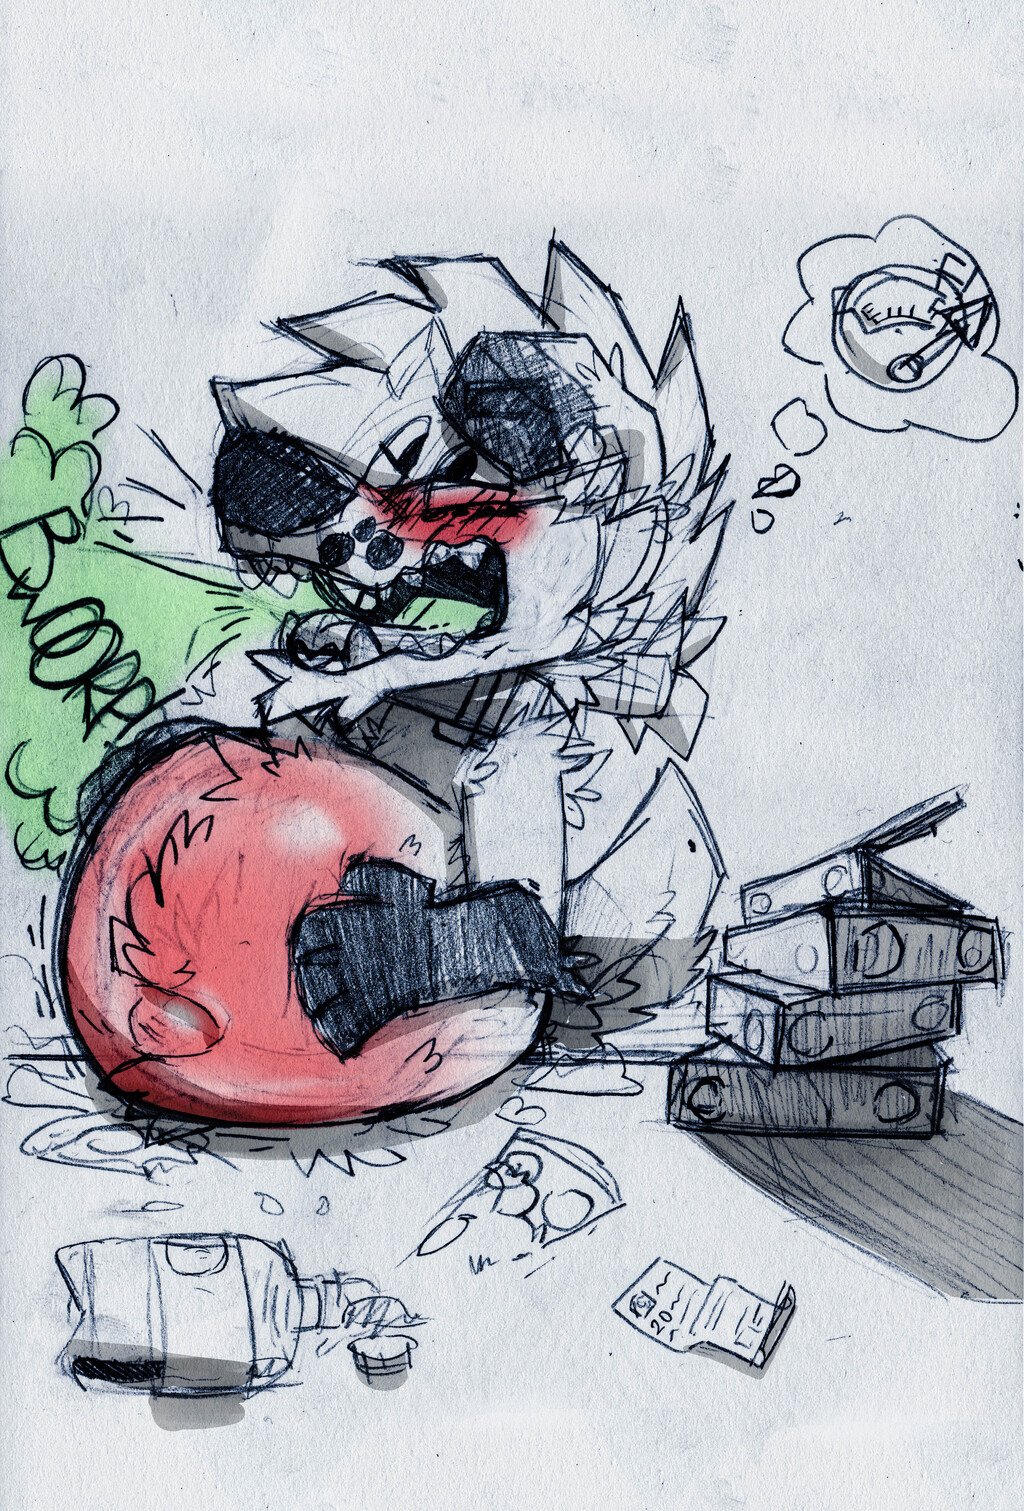 T-Too much pizza...*BURPS*